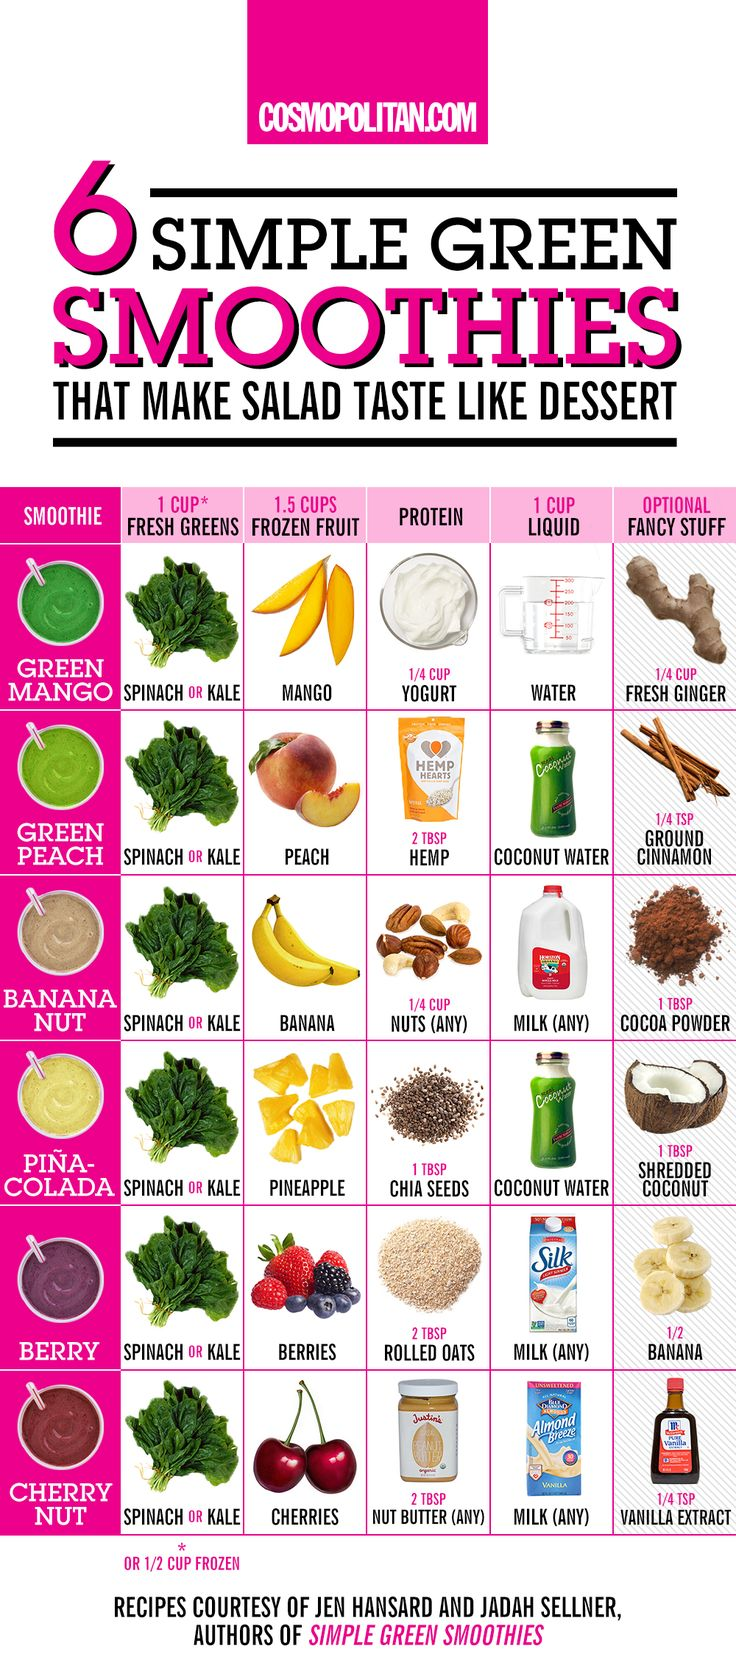 HEALTHY SMOOTHIE IDEAS: Make your salad and veggies taste like dessert with these delish and easy smoothie ideas! Swap your bowl of cereal for one of these healthy ideas that can quickly be whipped up in the morning. Learn how to make tasty breakfast smoothies like green mango, green peach, banana nut, pina-colada, berry, and cherry nut, here!